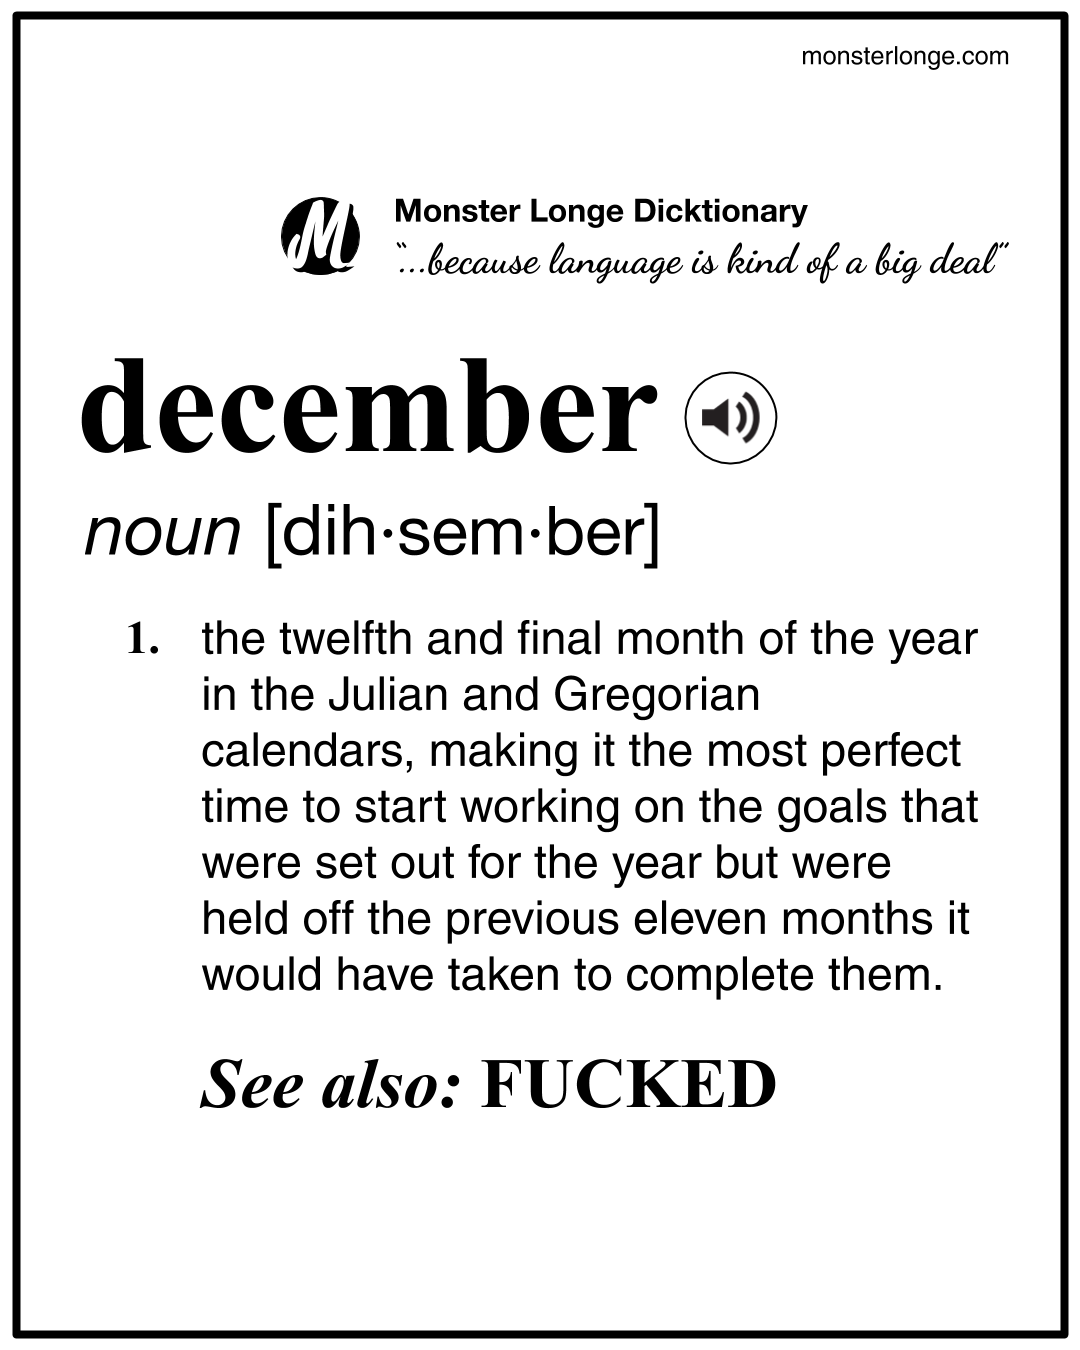 December: the twelfth and final month of the year in the Julian and Gregorian calendars, making it the most perfect time to start working on the goals that were set out for the year but were held off the previous eleven months it would have taken to complete them.